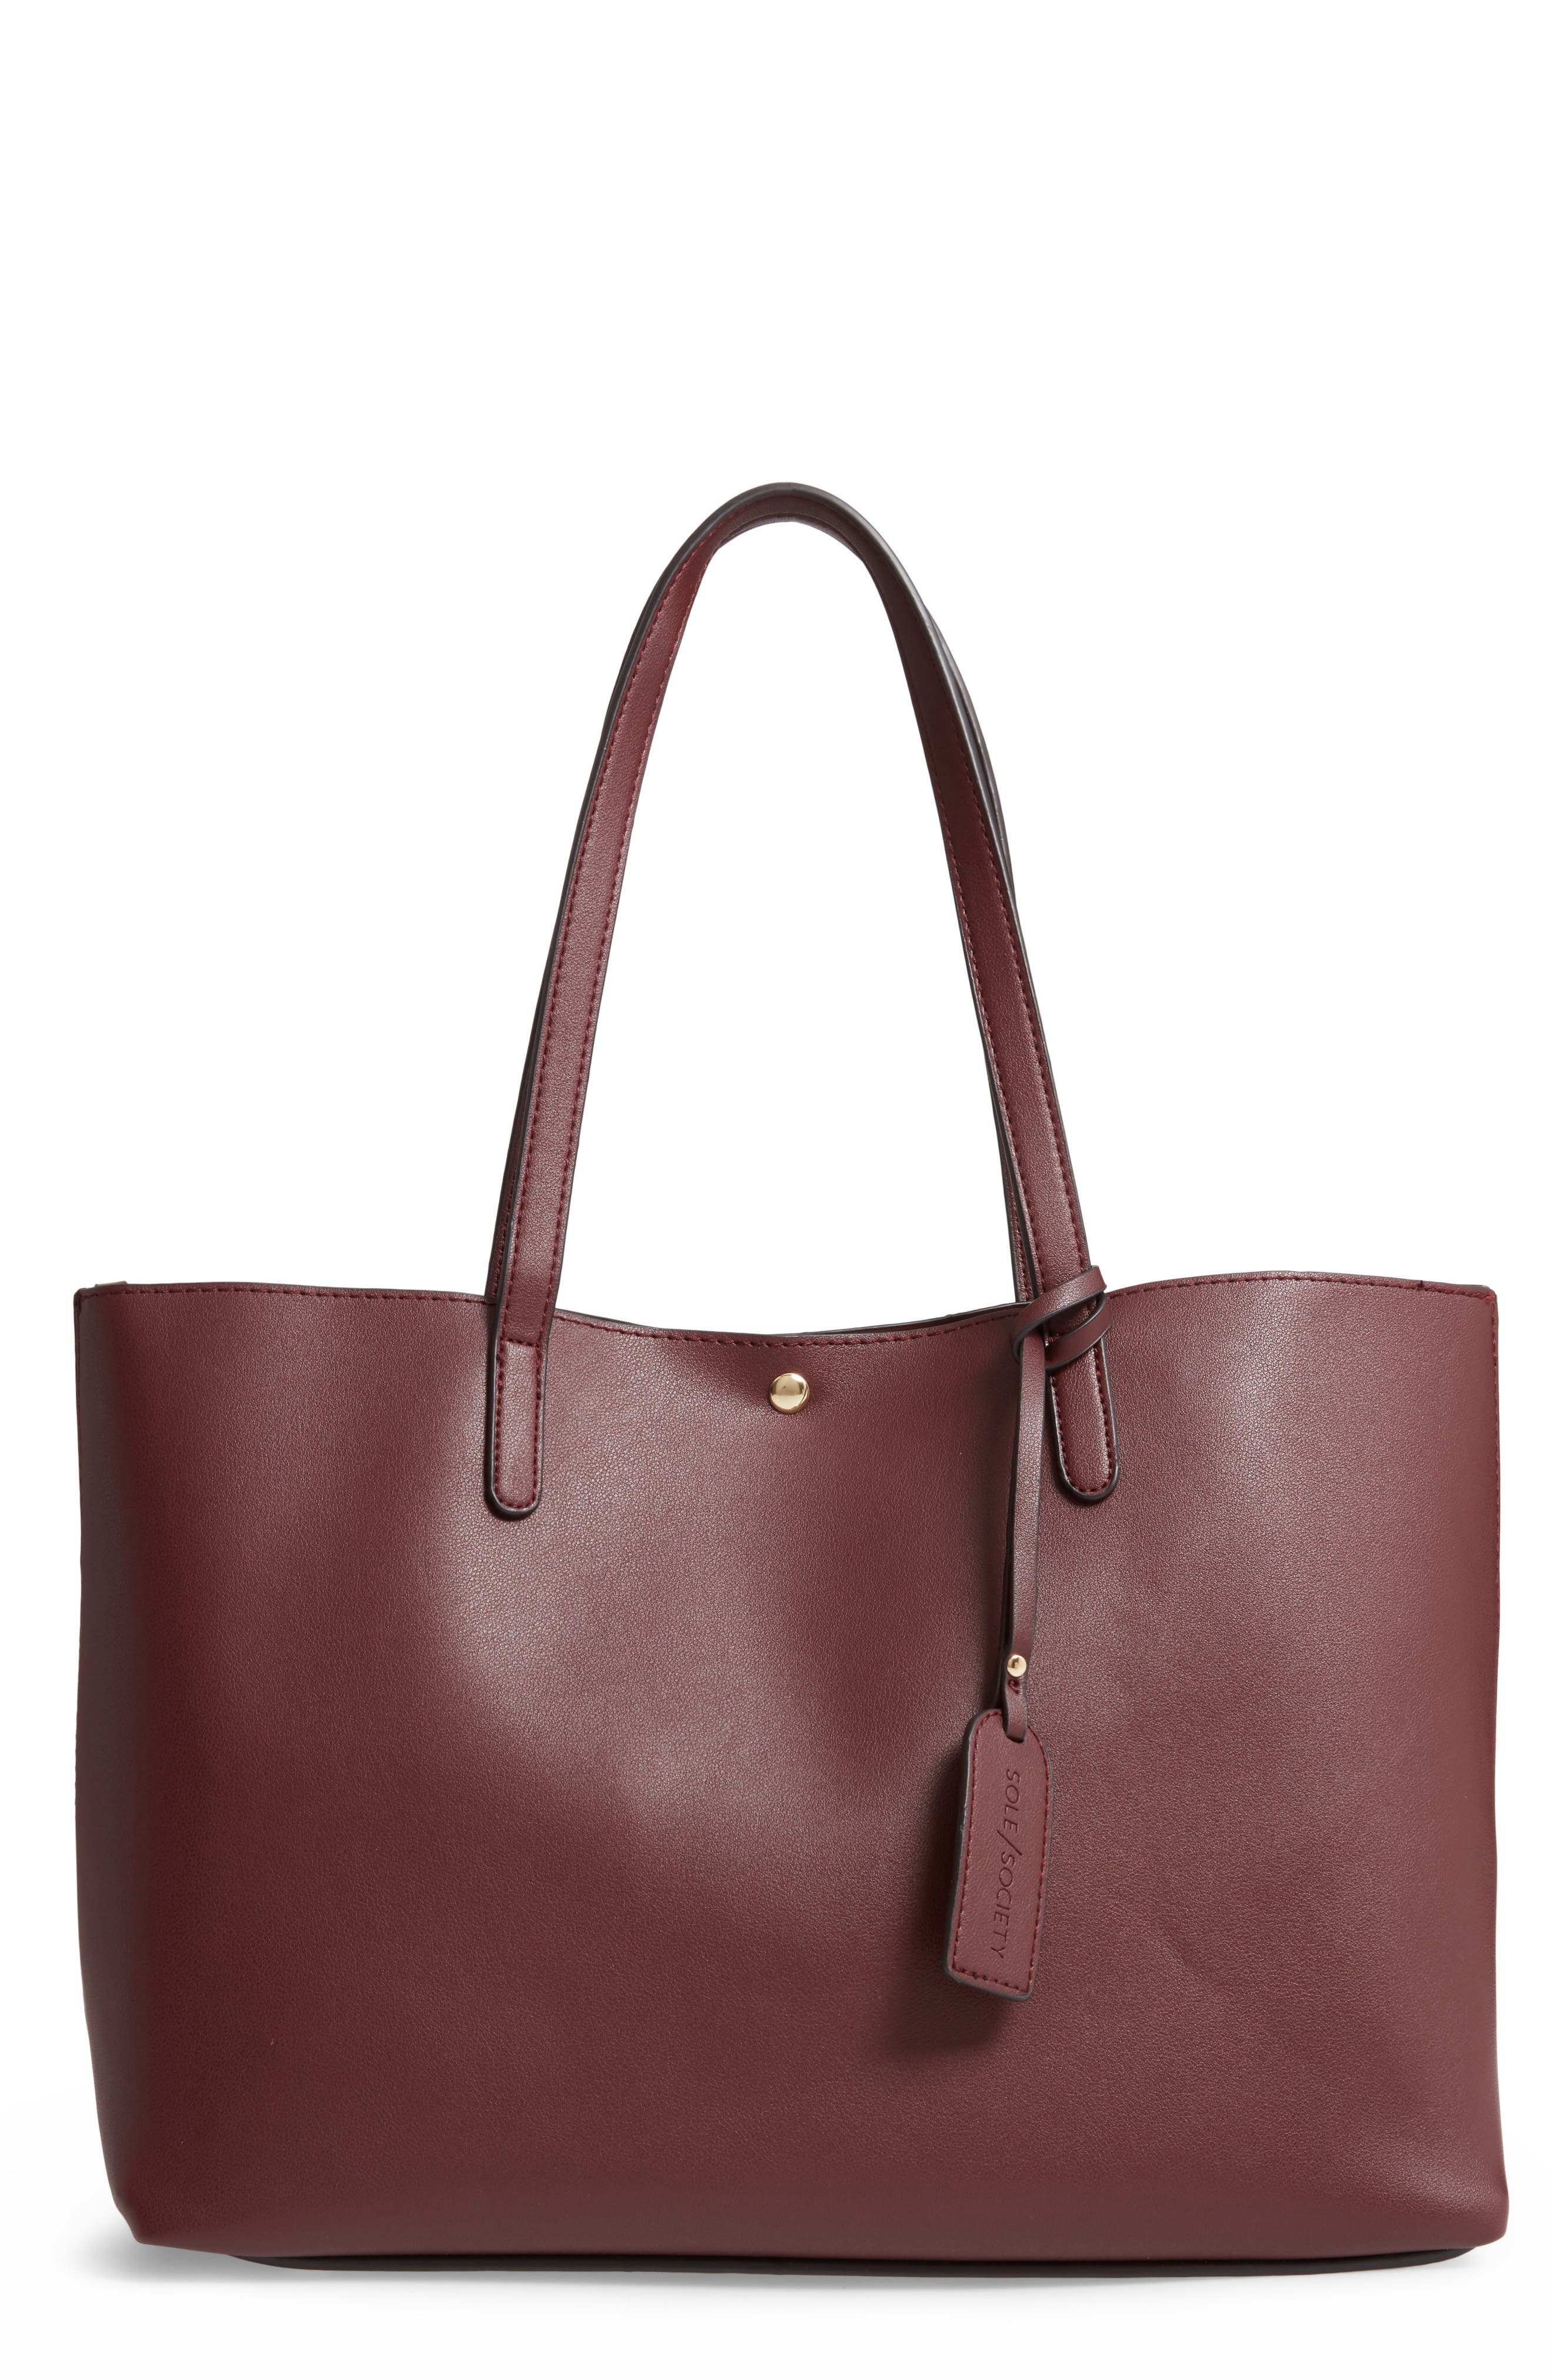 SOLE SOCIETY, Zeda Faux Leather Tote, Main thumbnail 1, color, 930